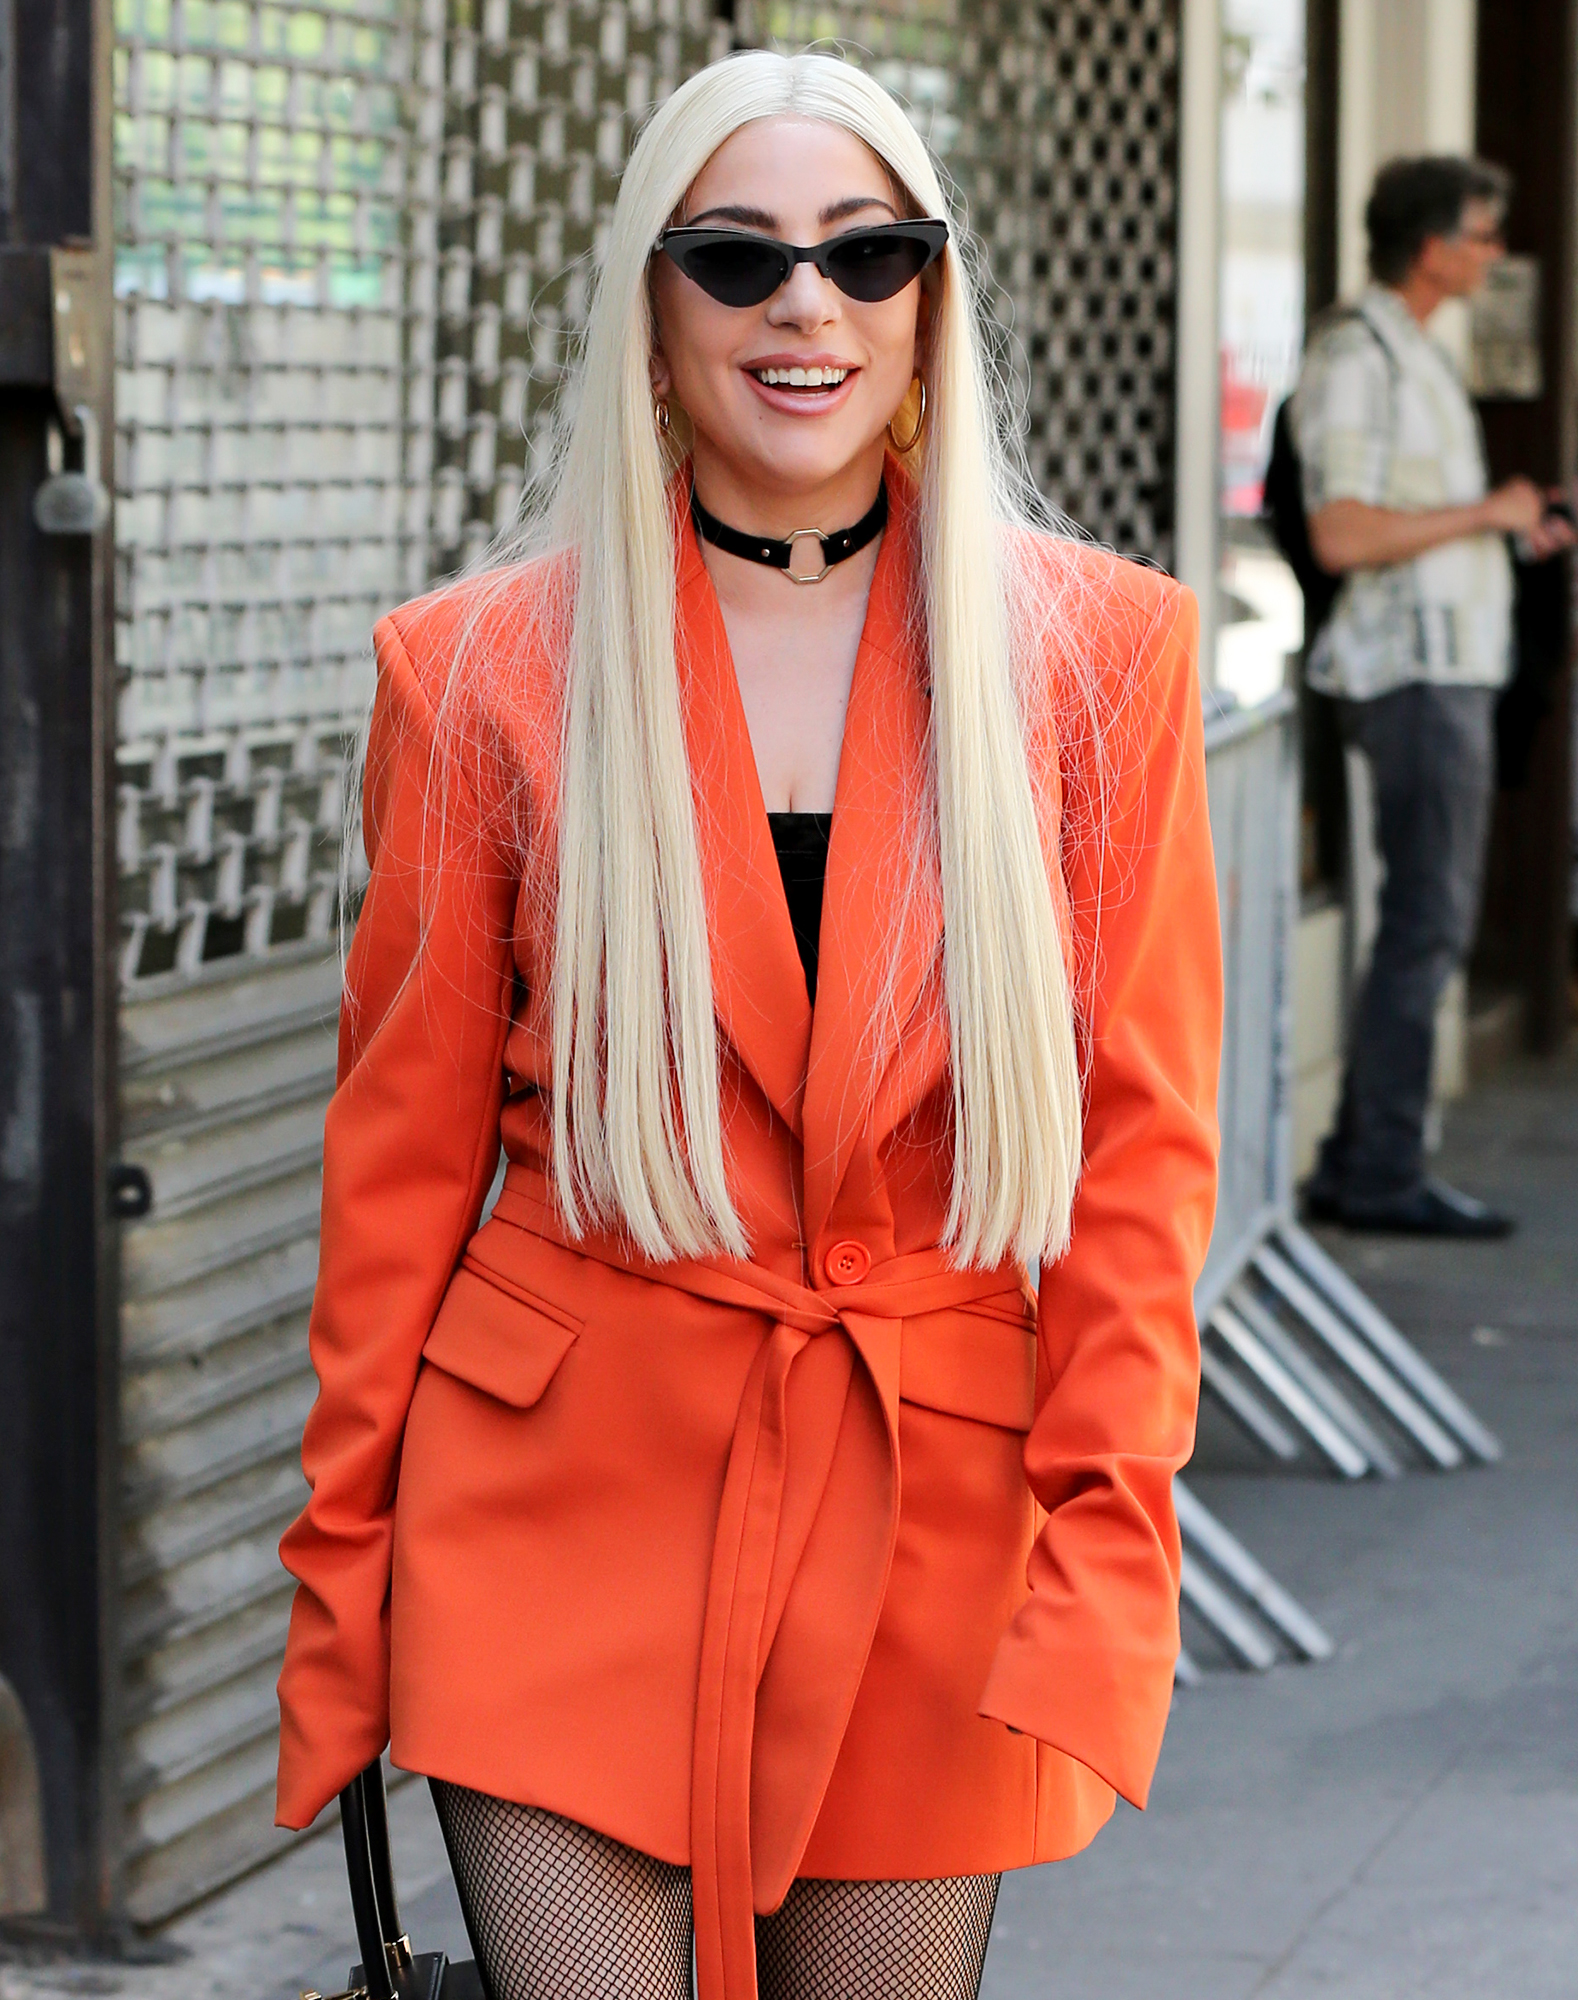 Singer Lady Gaga, wearing an orange suit and platform lace-up boots, walks in Soho in New York City, New York on June 25, 2018.